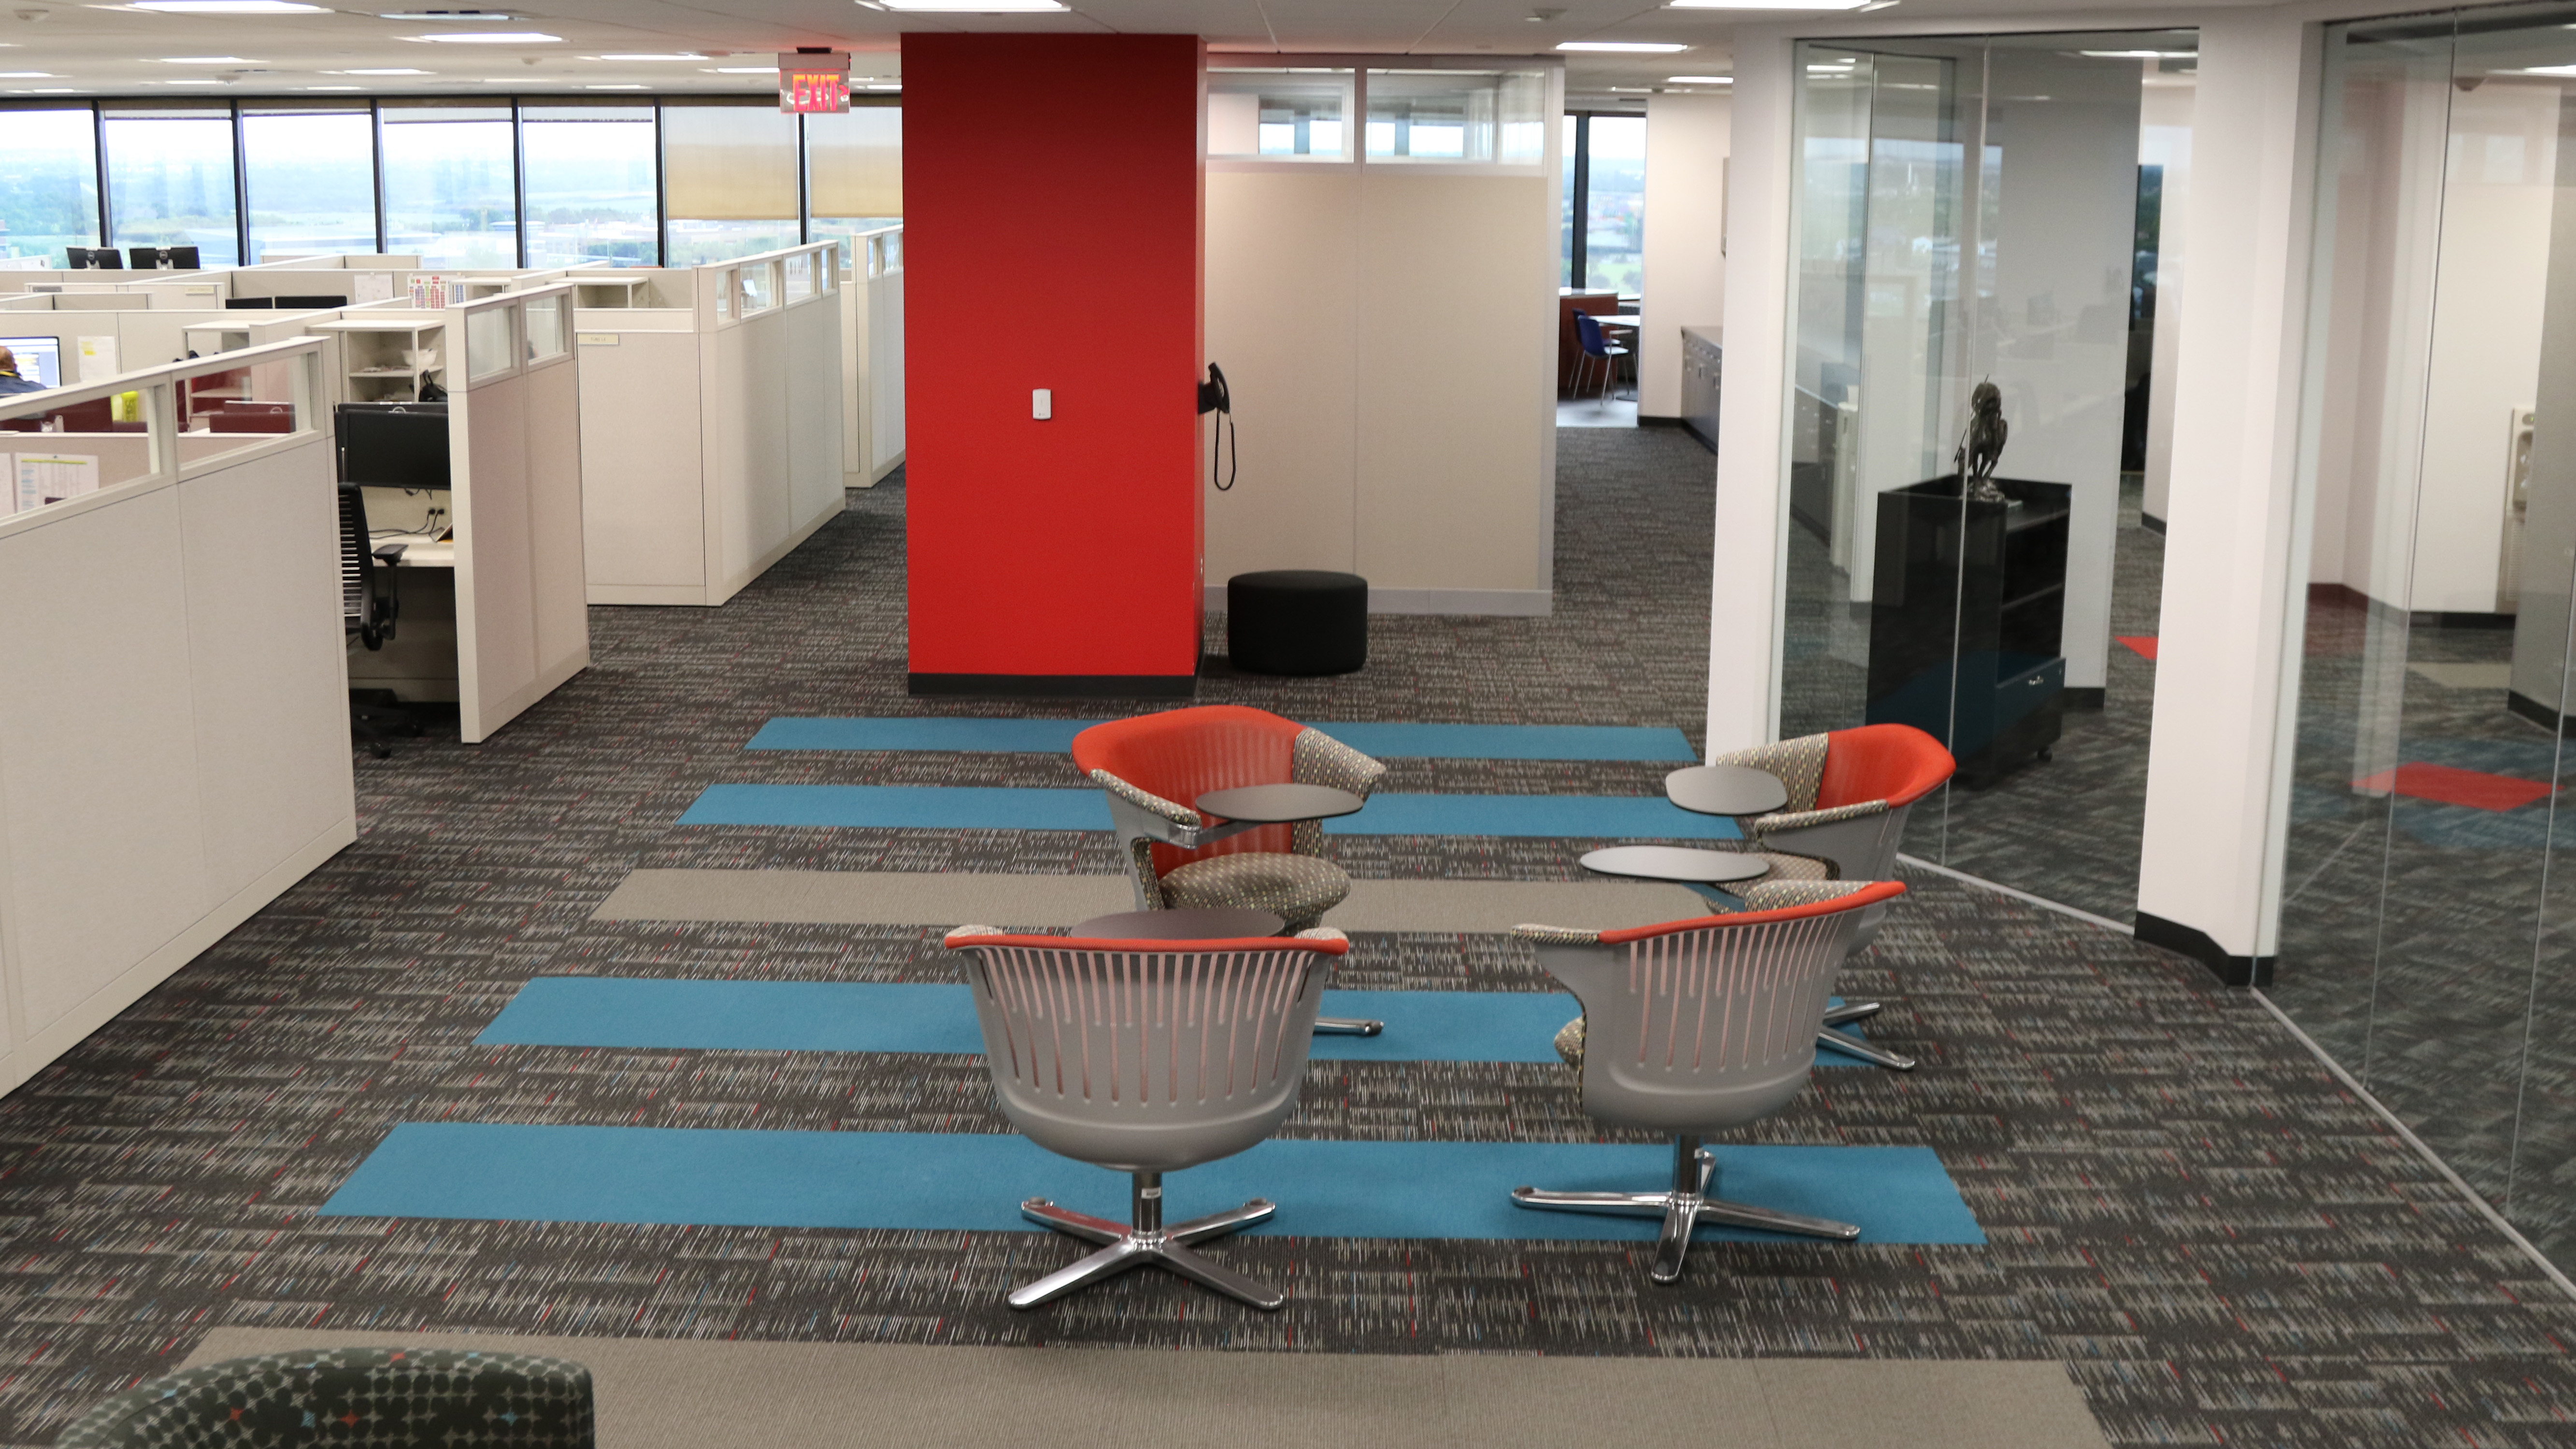 American Fidelity coolest offices 2016